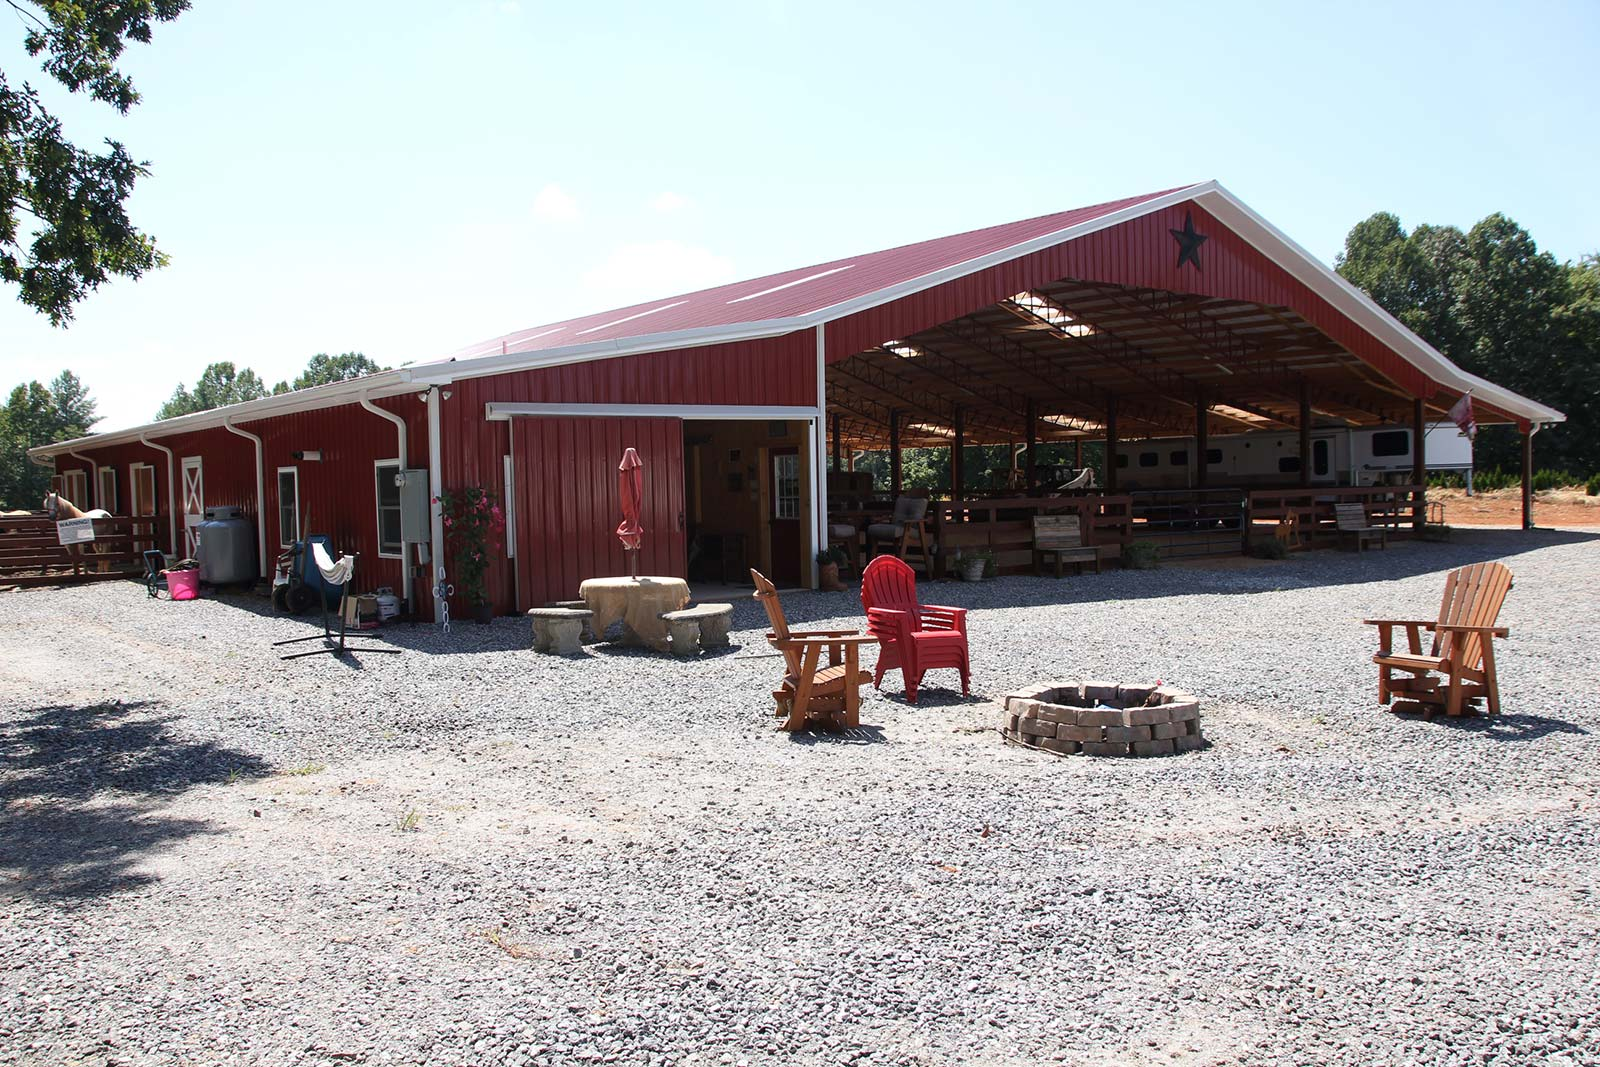 Outside view of Equestrian Facility built in Caldwell County